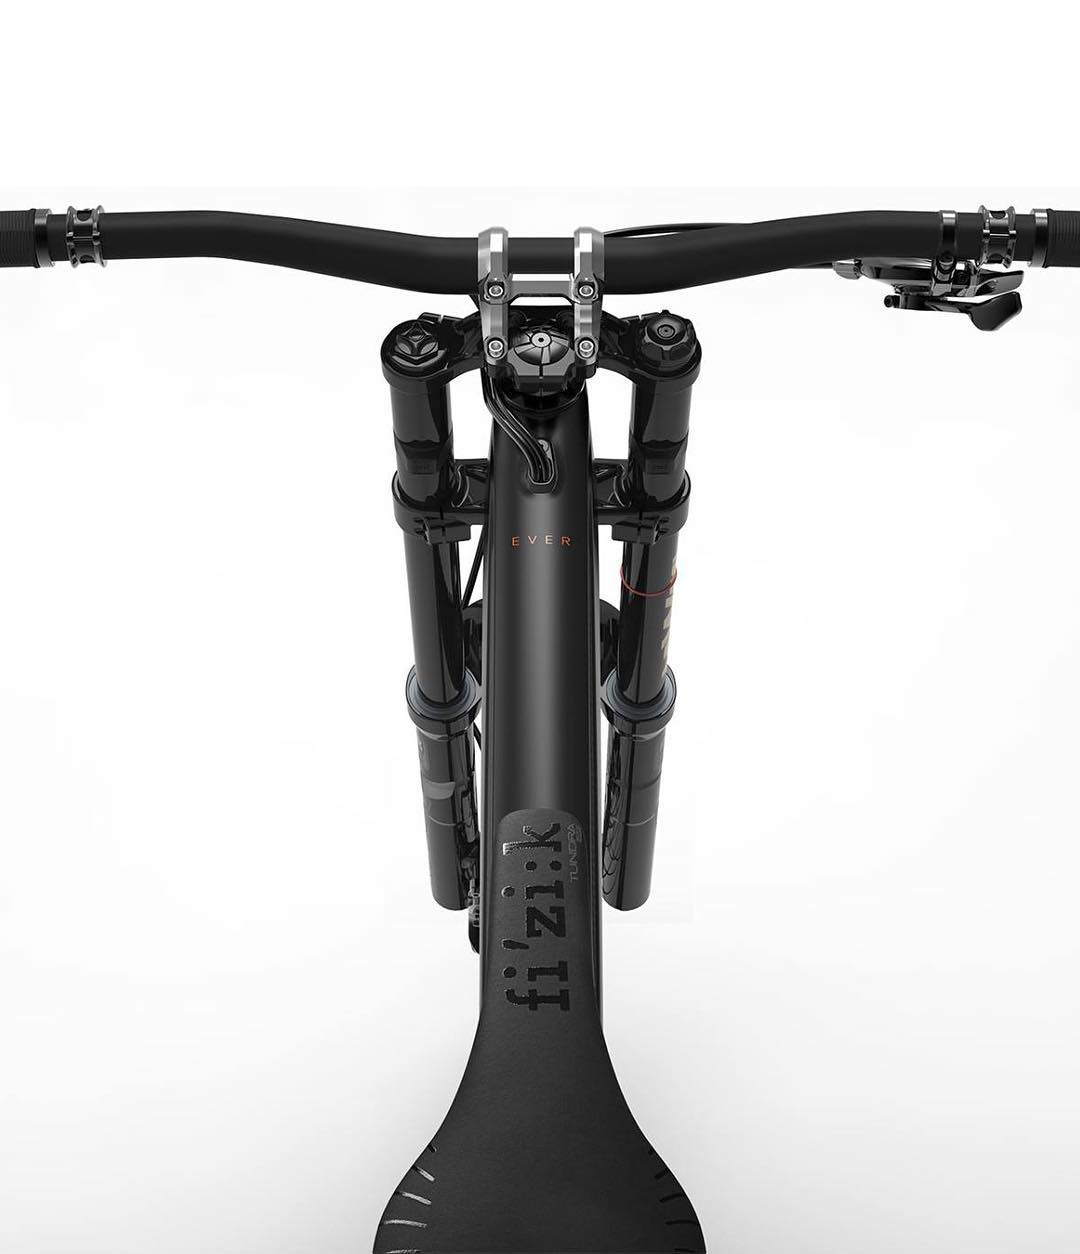 This must be one of the cleanest cockpits ever! Amazing new Carbon fiber bikes from @rideunno ! #MTB #DH #enduro